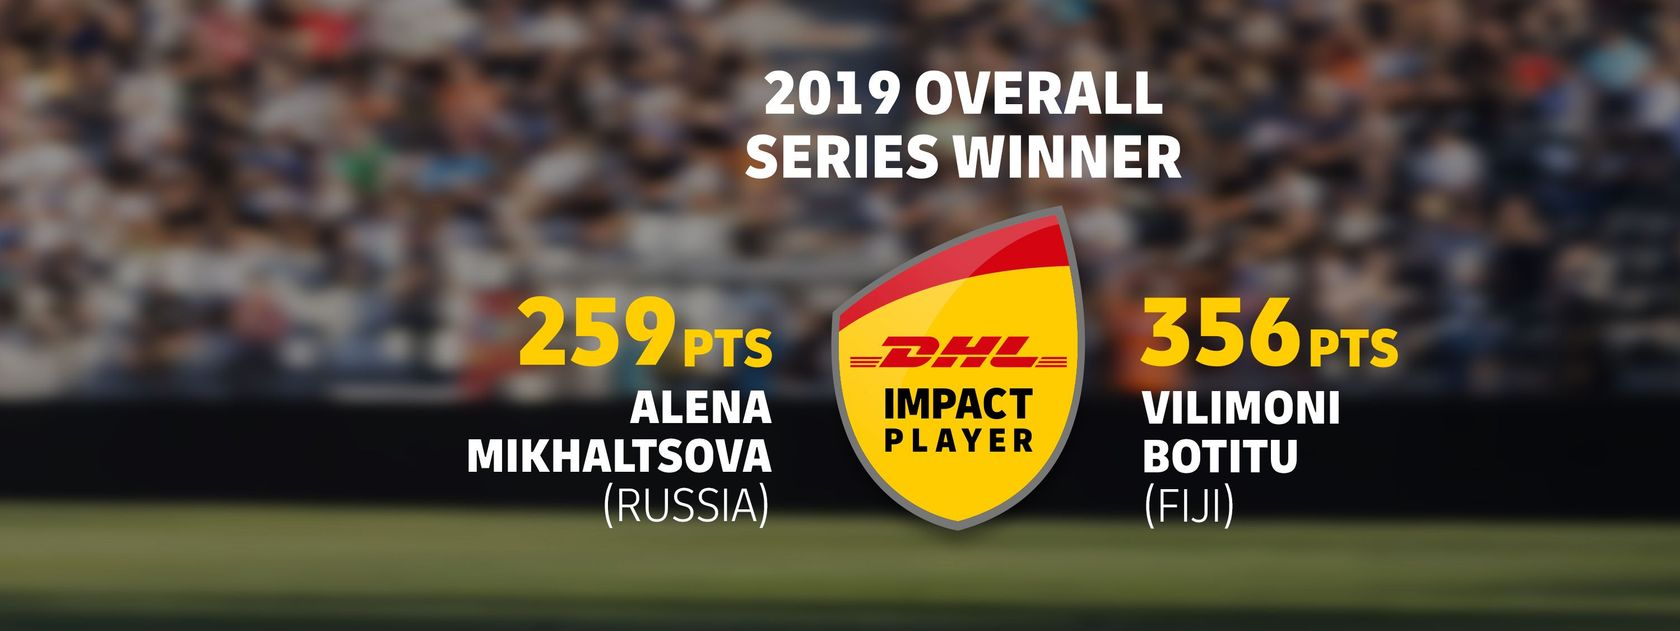 dhl banner sevens series page